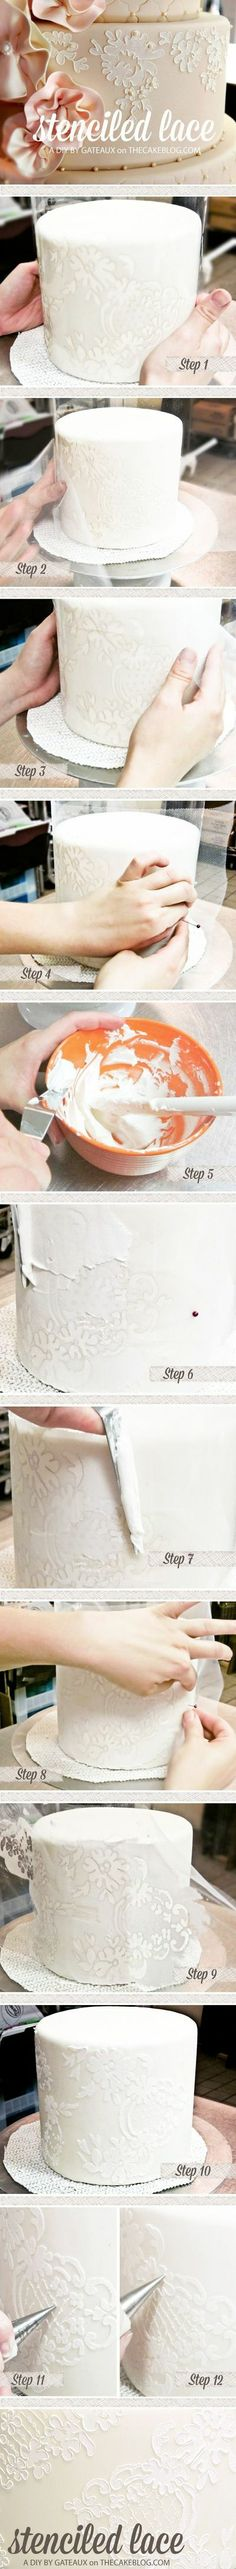 Stenciled Lace Cake Tutorial | by Gateaux Inc | TheCakeBlog.com